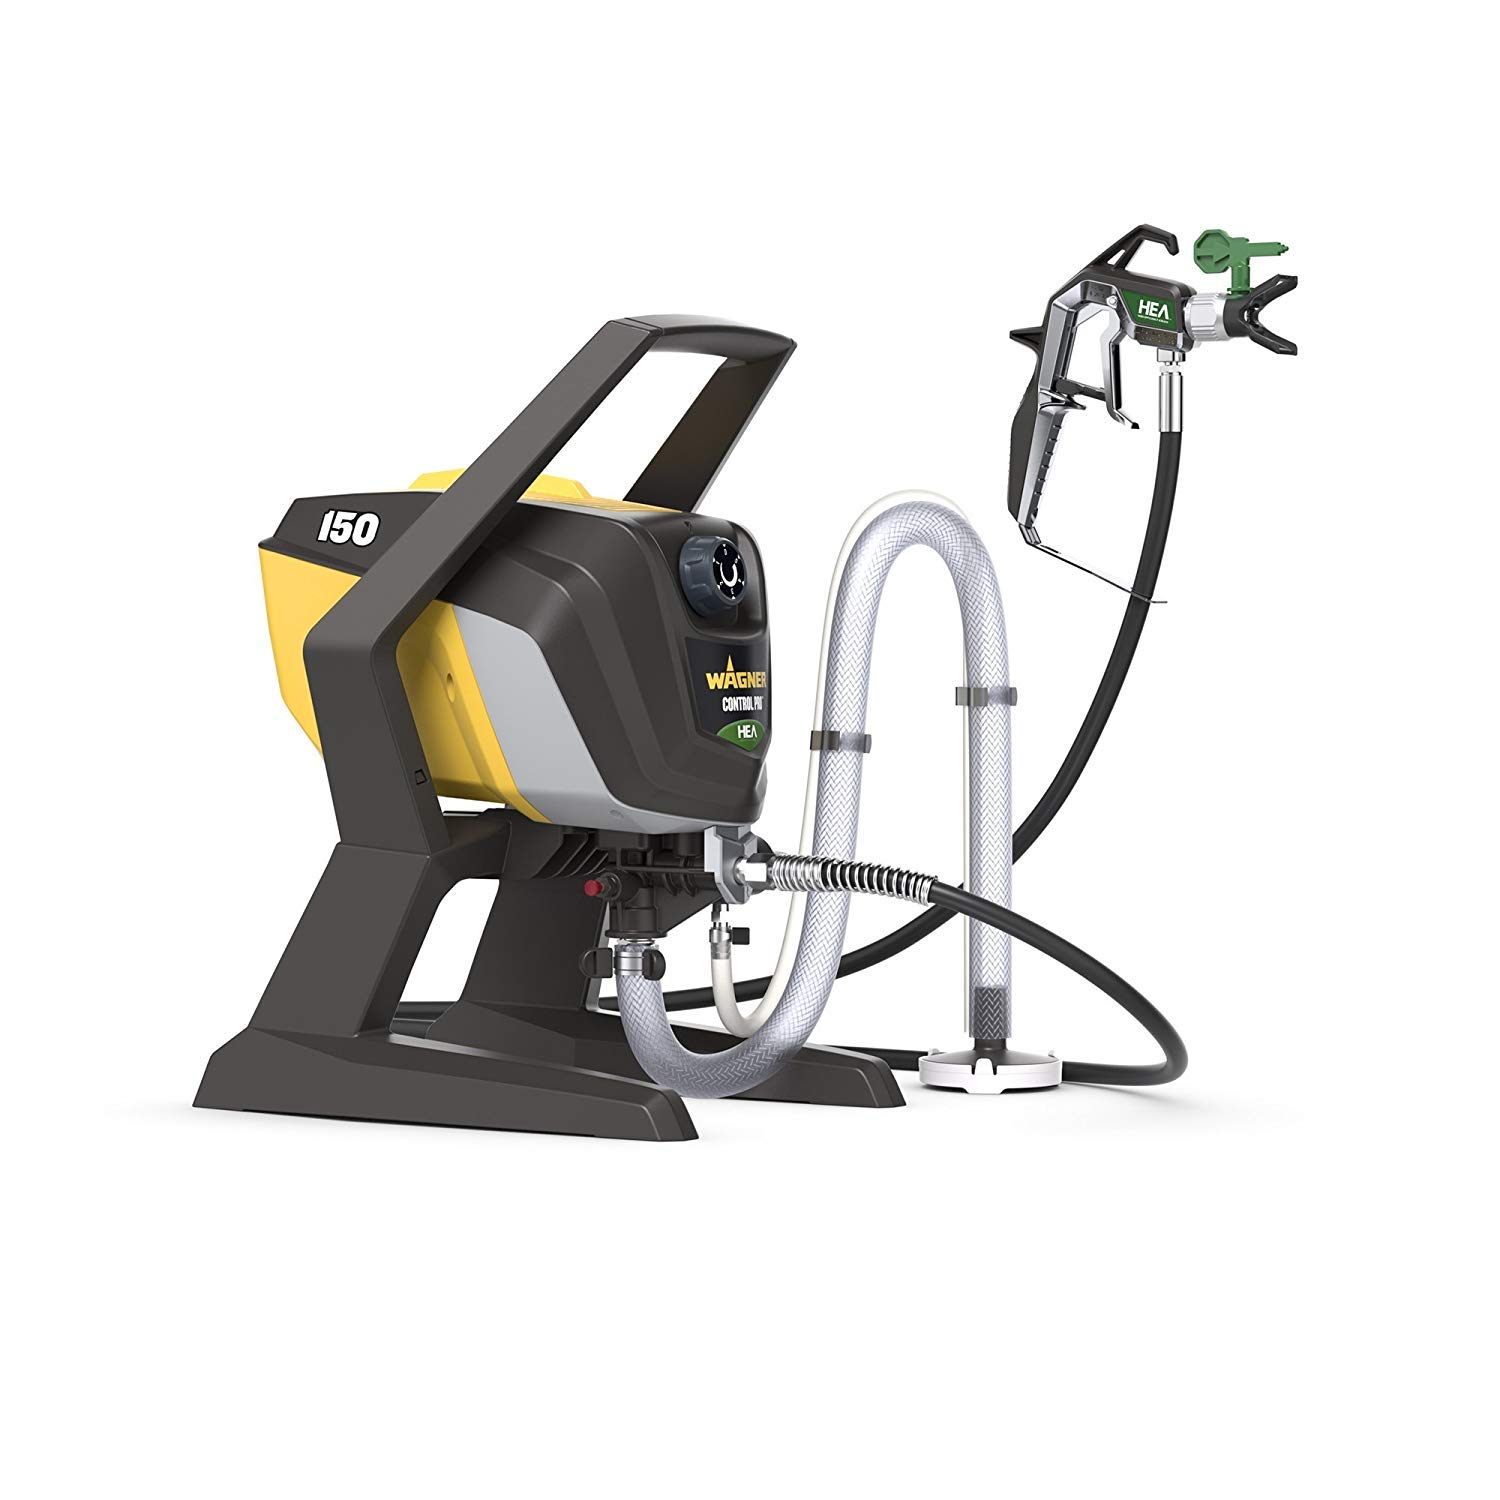 Wagner Control Pro 150 Paint Sprayer, High Efficiency Airless with Low Overspray by Wagner Spraytech